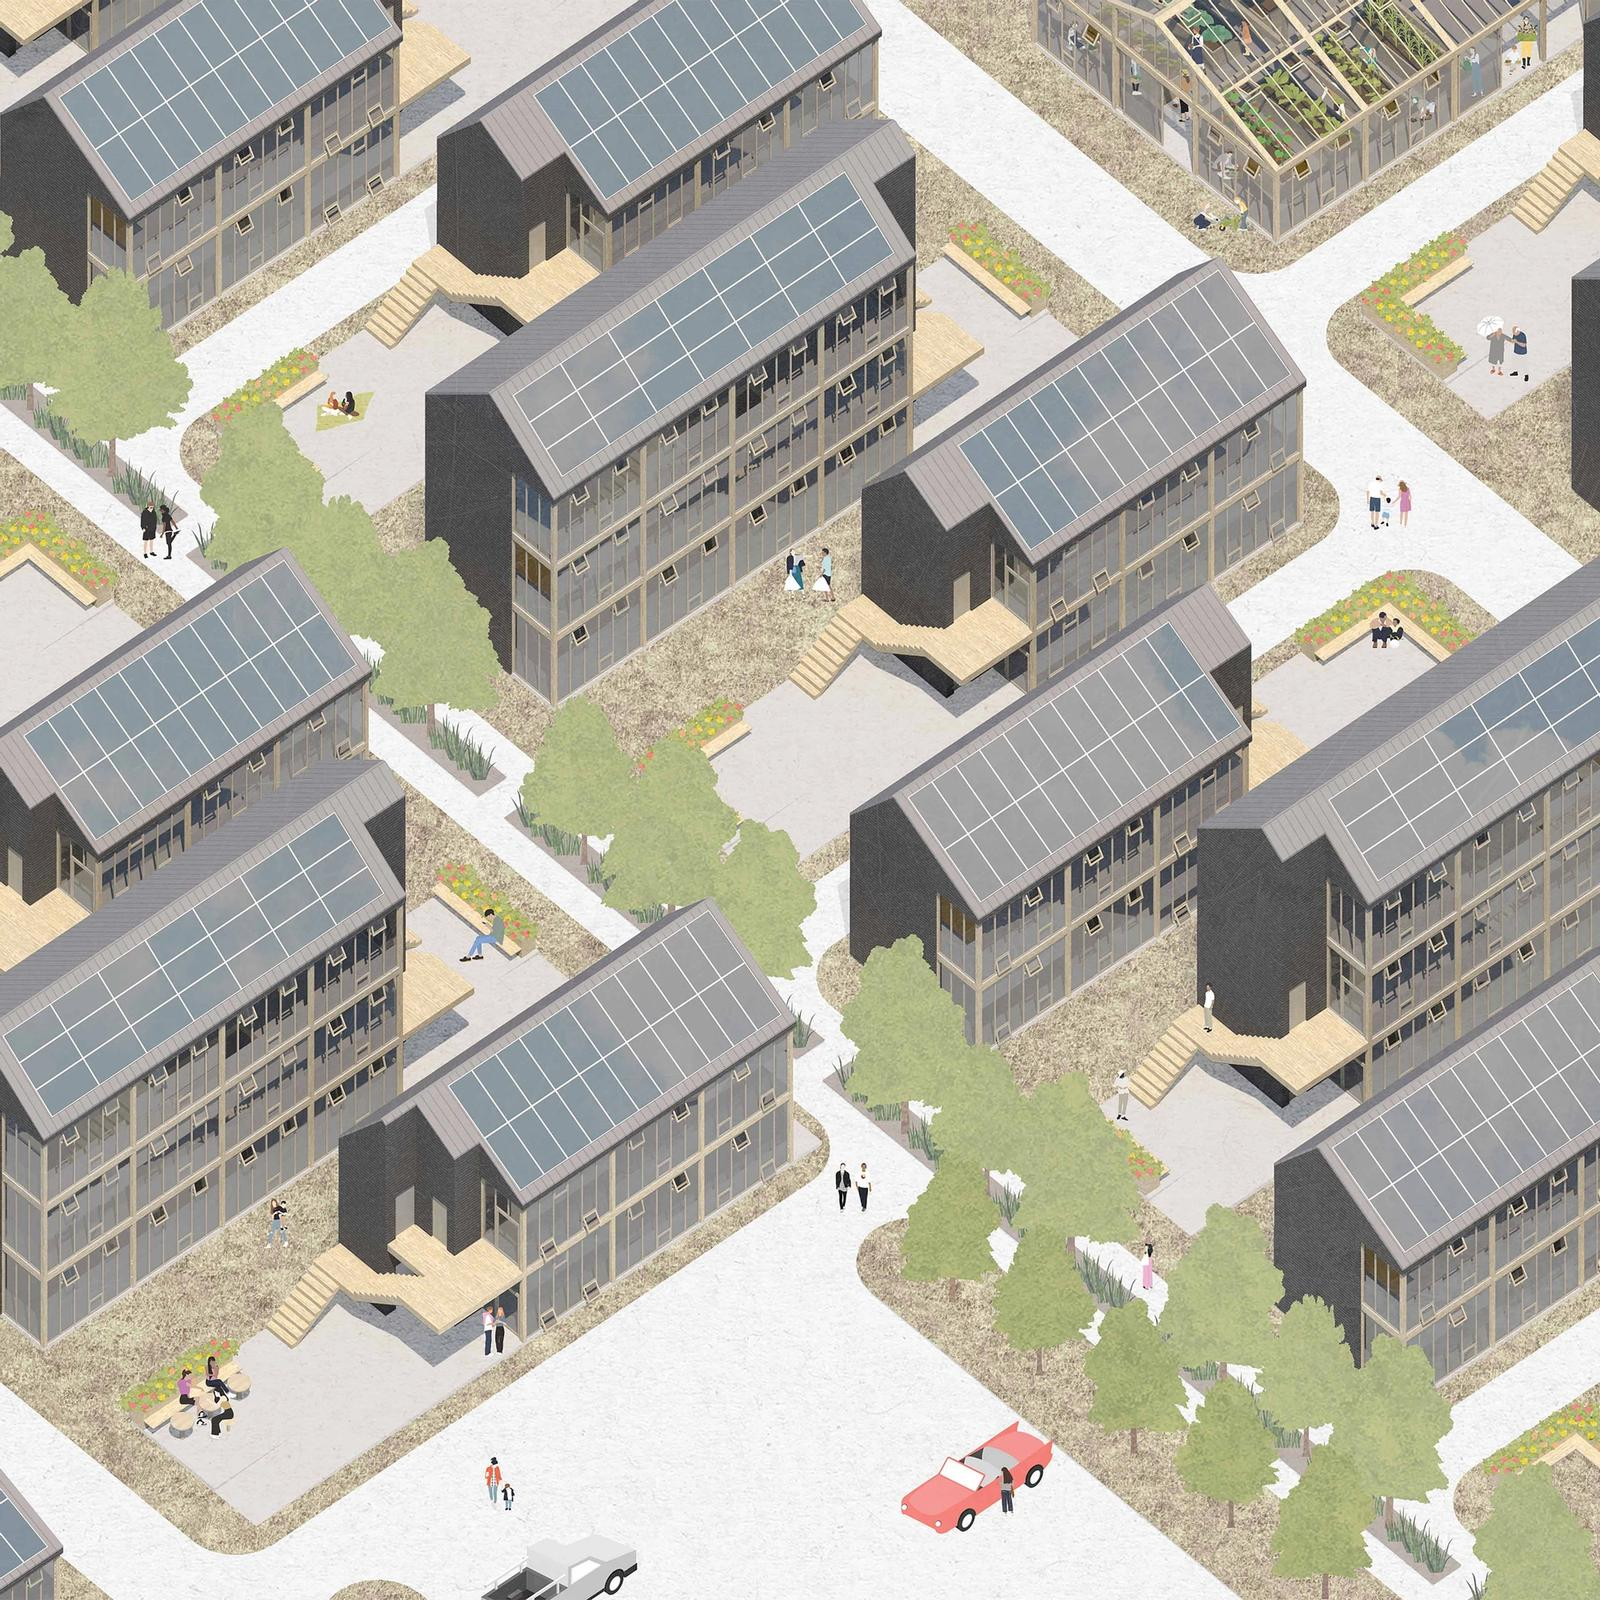 Outer Mix - Investigating mixed-use development on the Outer Cape - Render Aerial